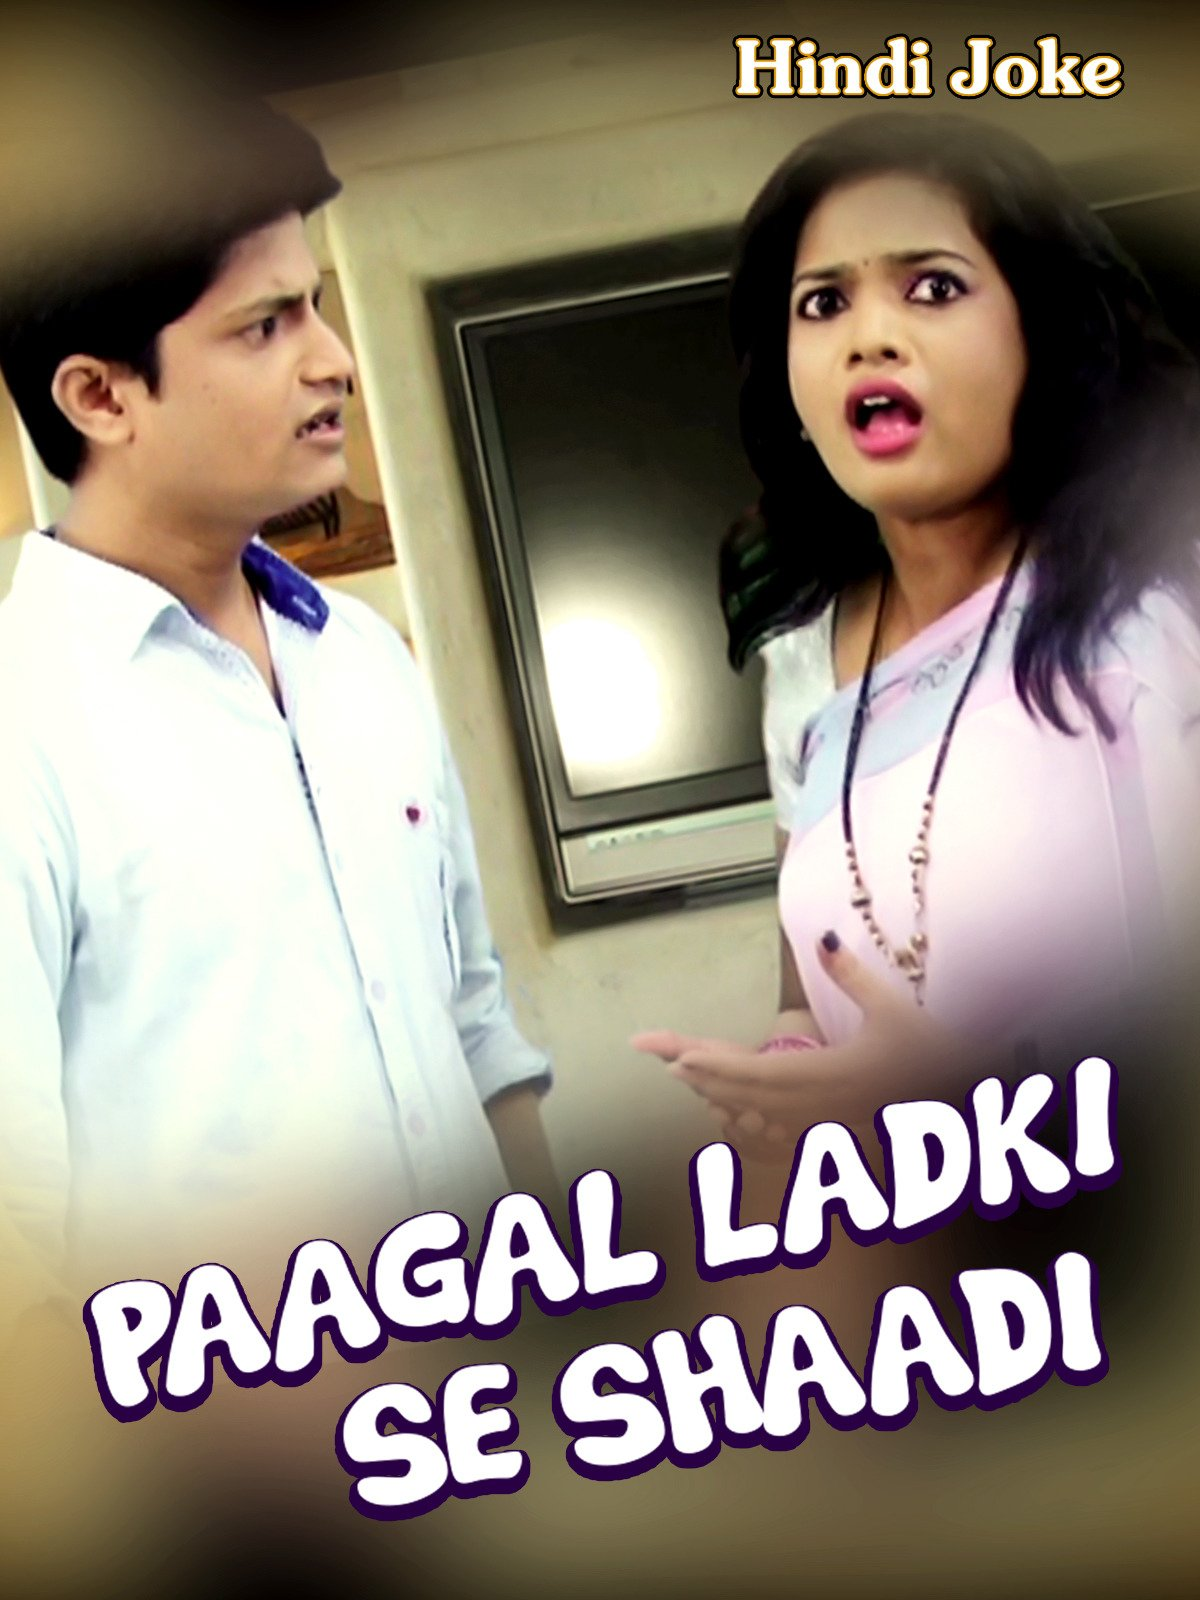 Clip: Paagal Ladki Se Shaadi Hindi Joke